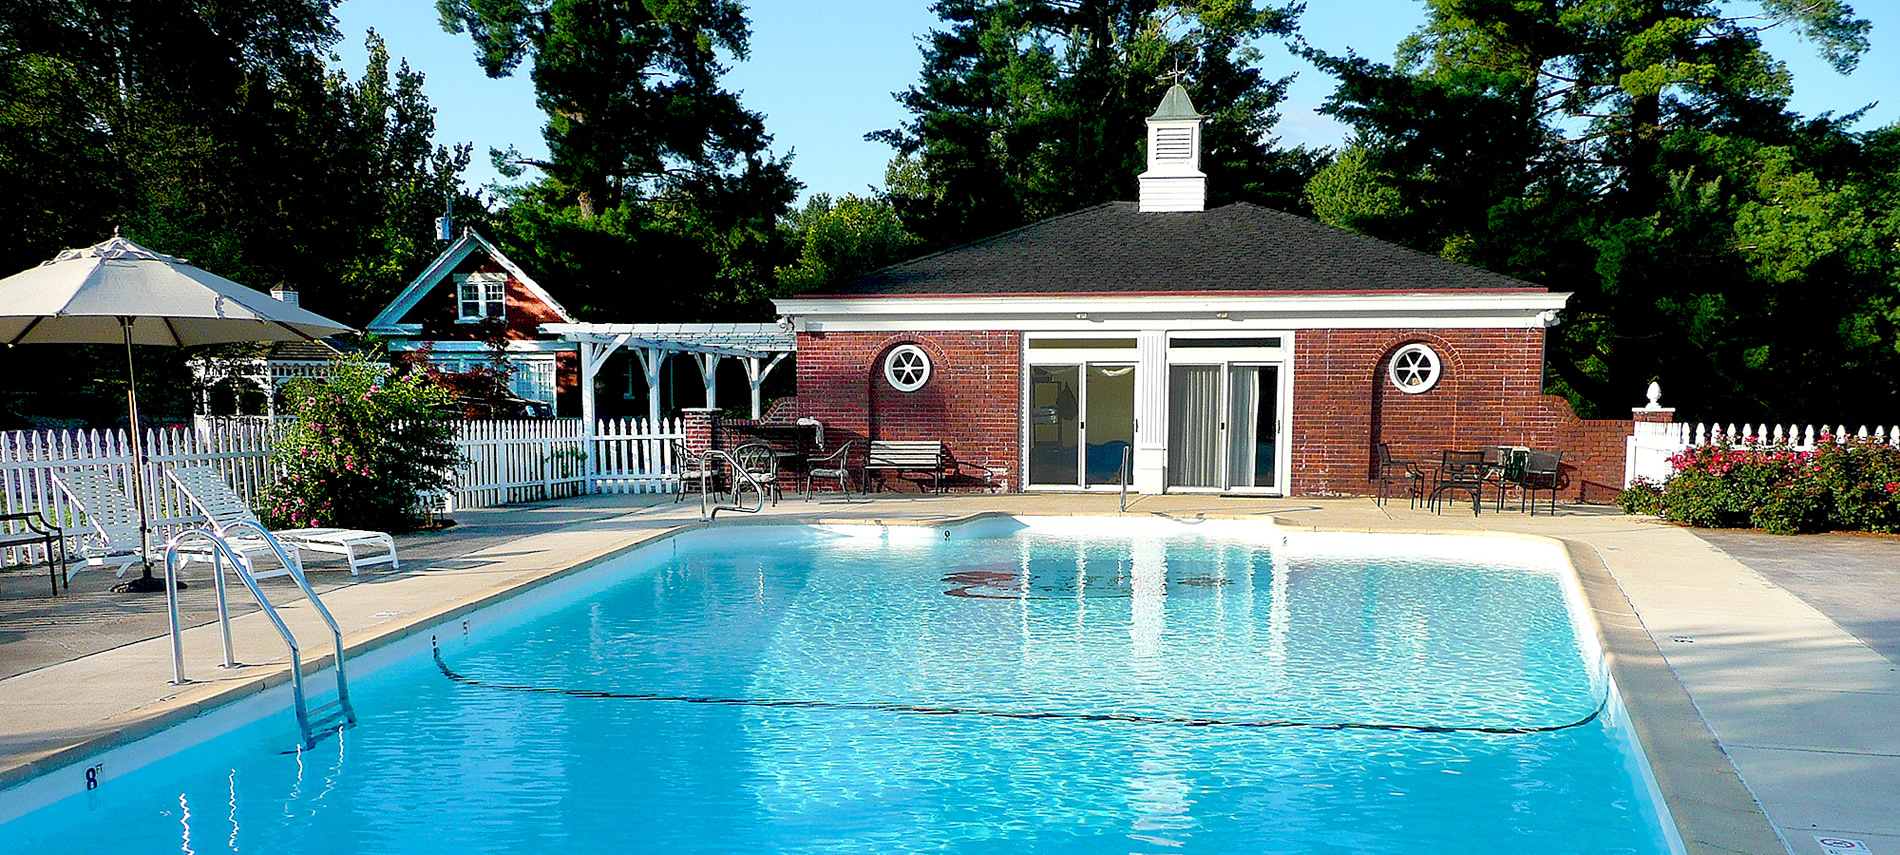 A swimming pool with red brick pool house in the background